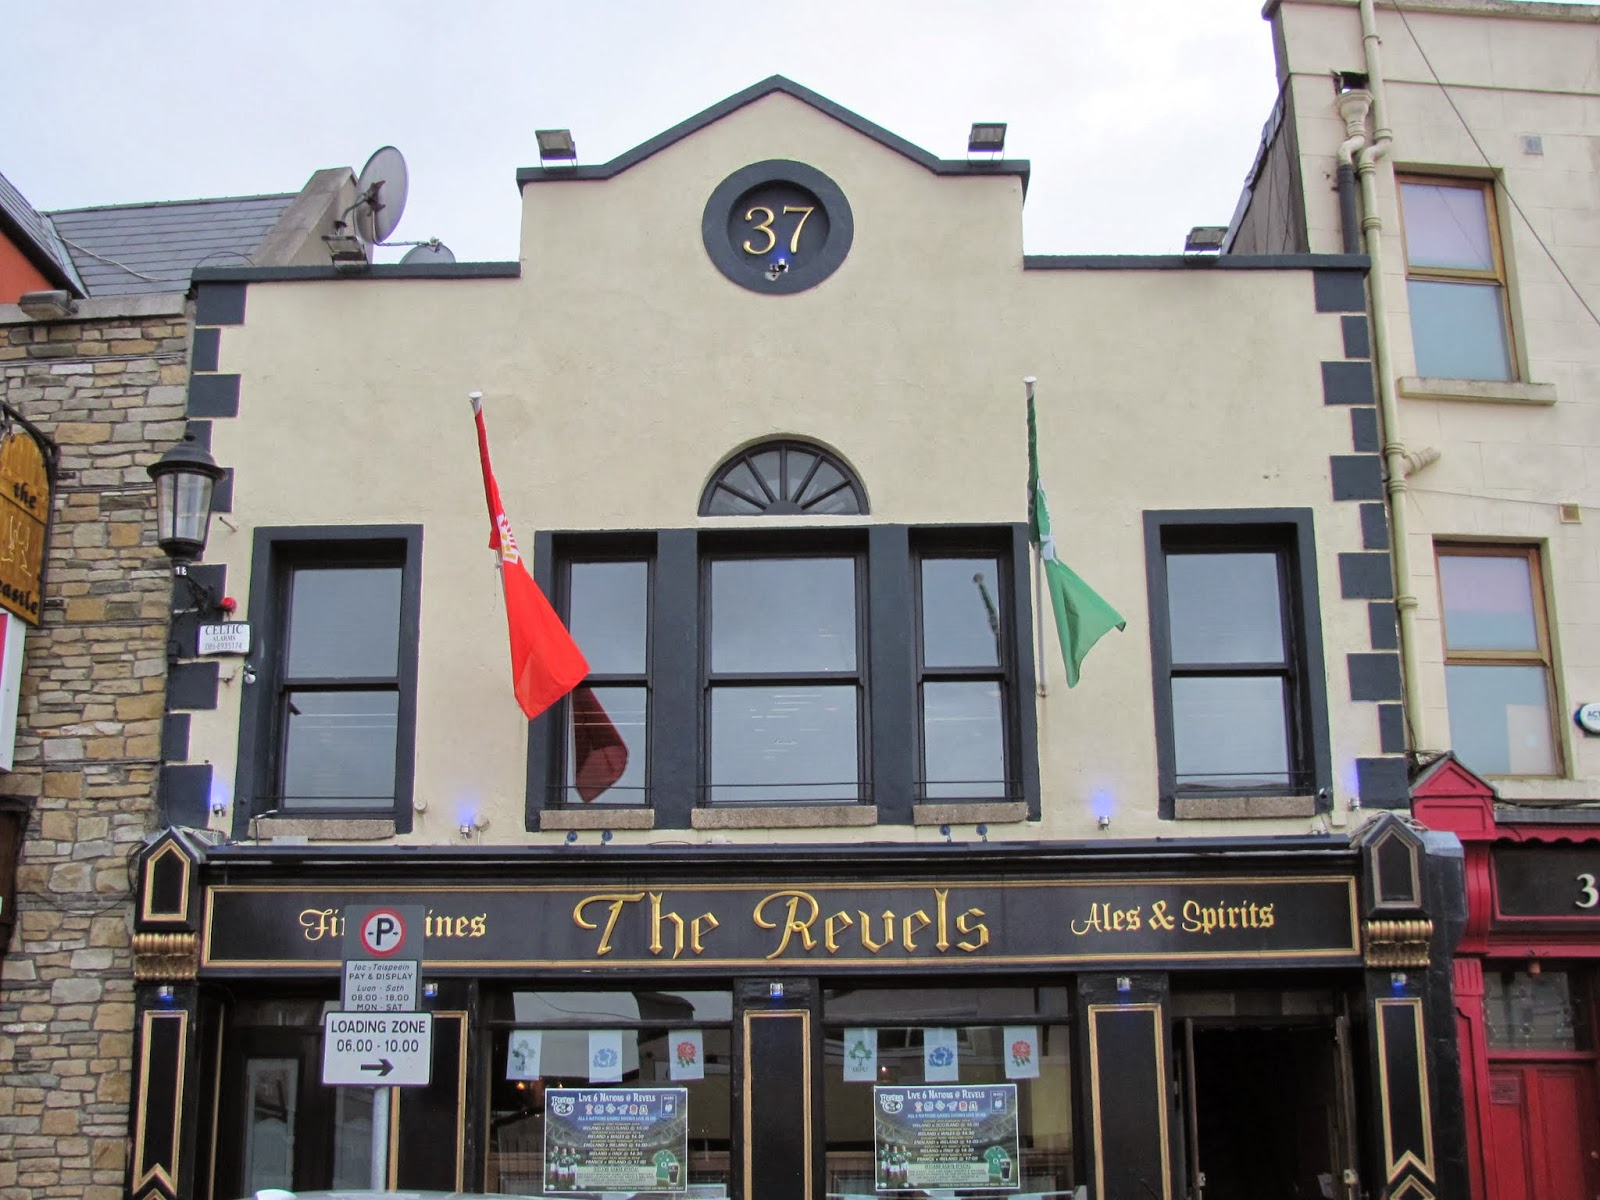 The Revels in Rathfarnham southwest Dublin